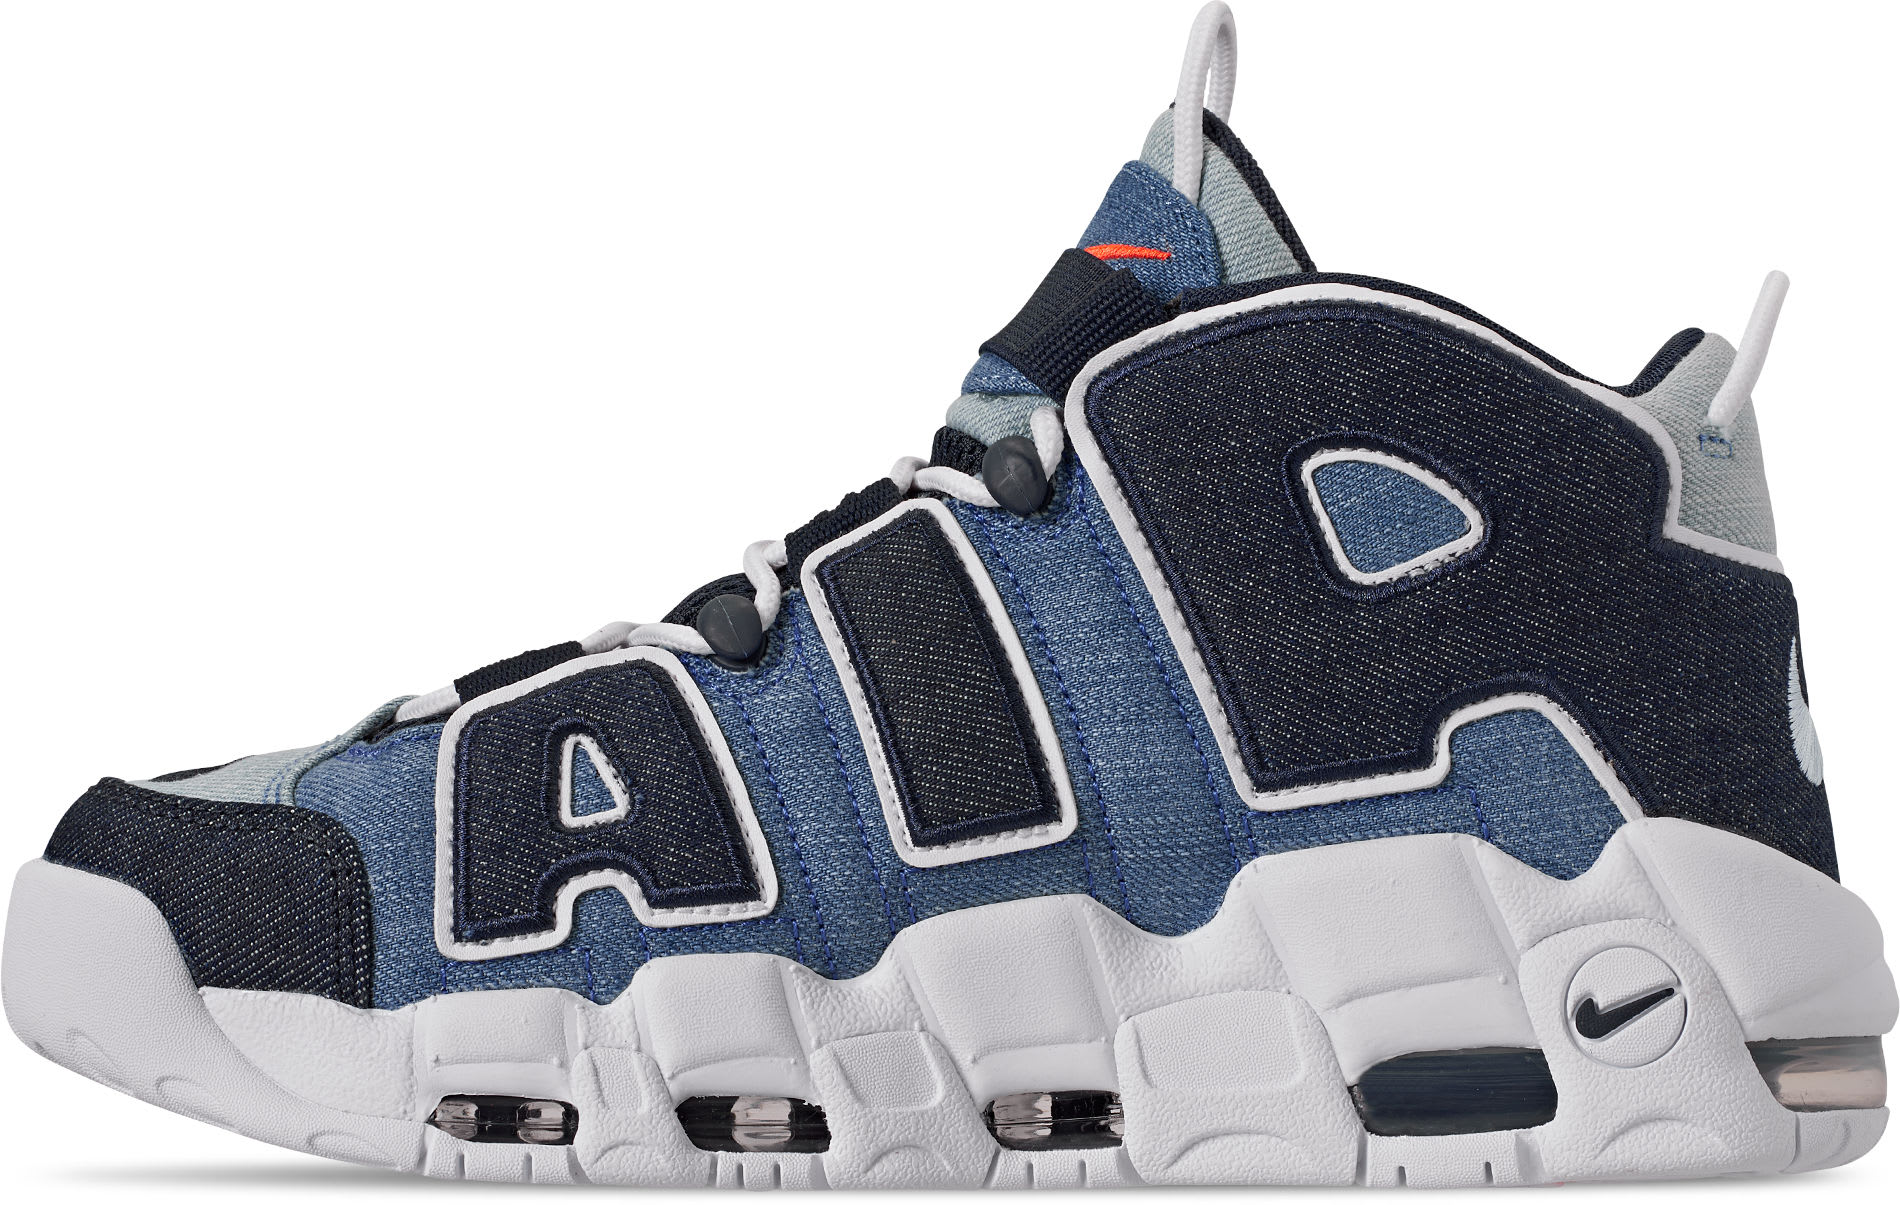 Nike Air Mais Uptempo 'Denim' CJ6125-100 Medial